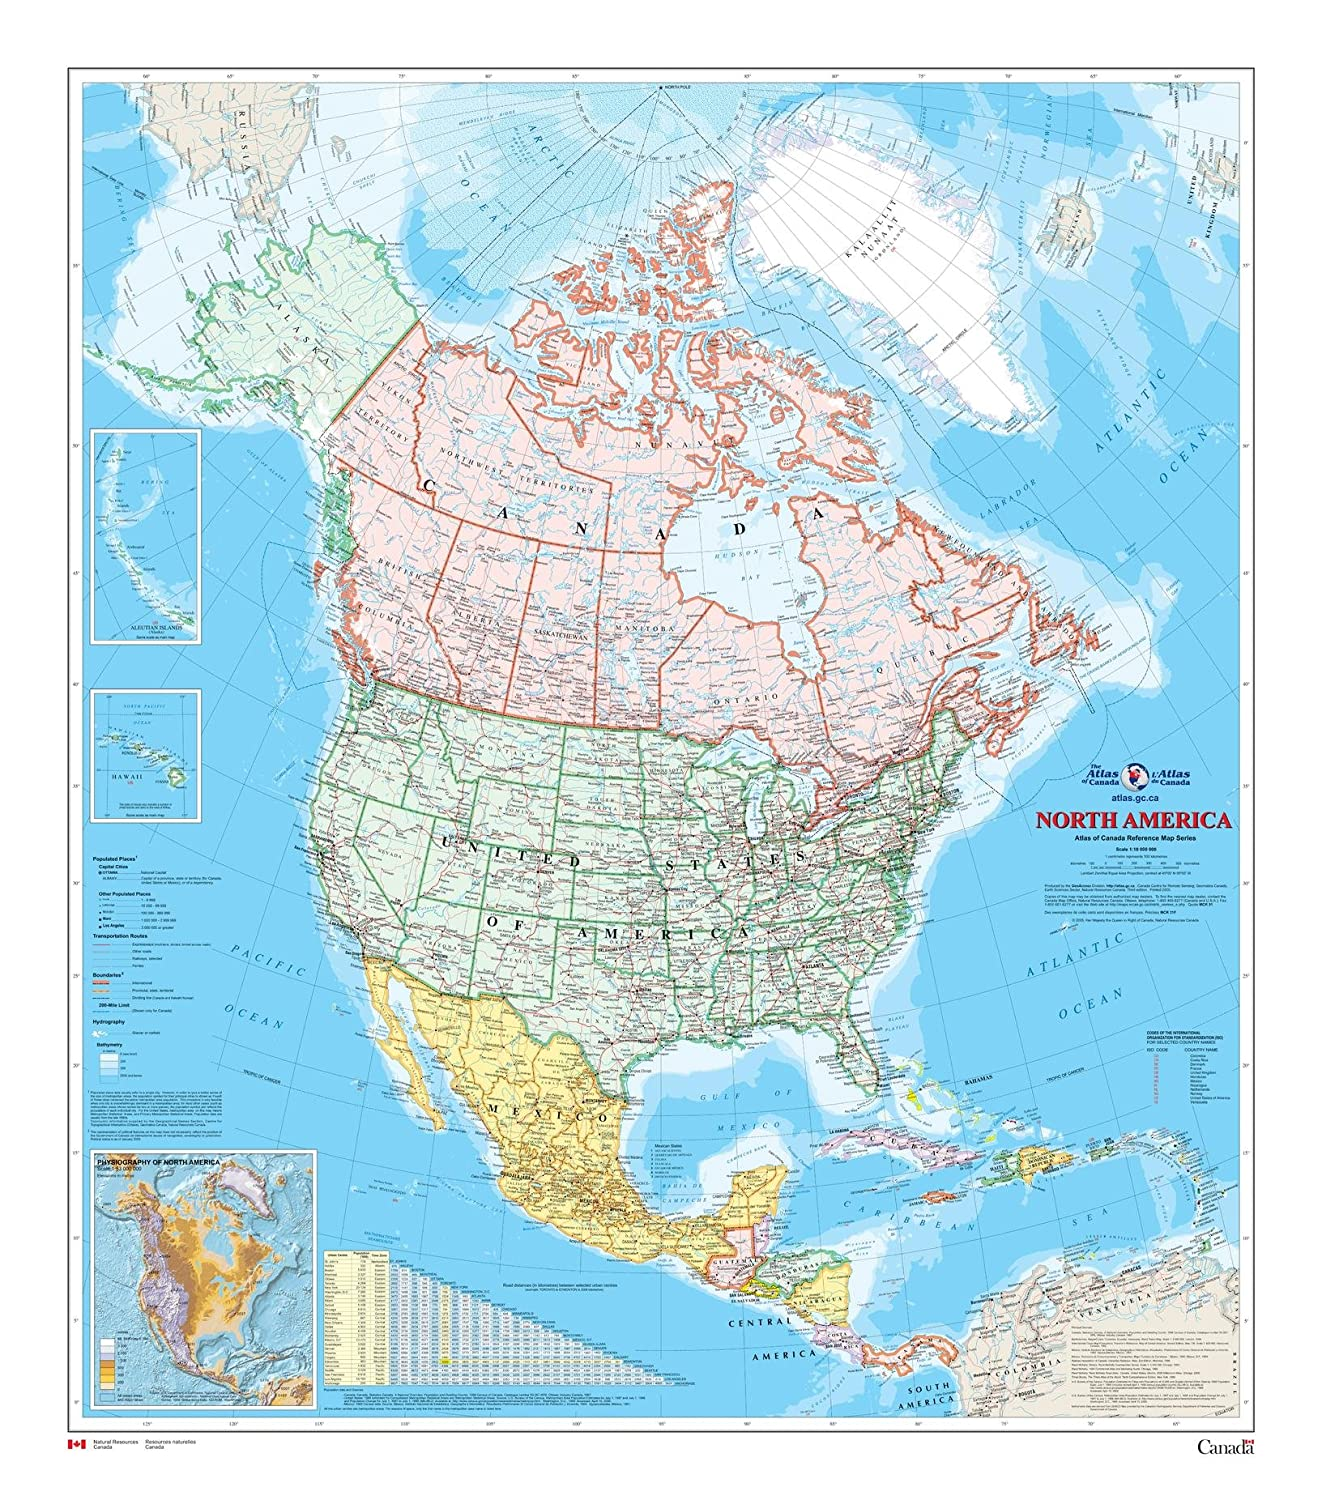 North America Wall Map - Atlas of Canada - 34 x 39 Laminated MapSherpa